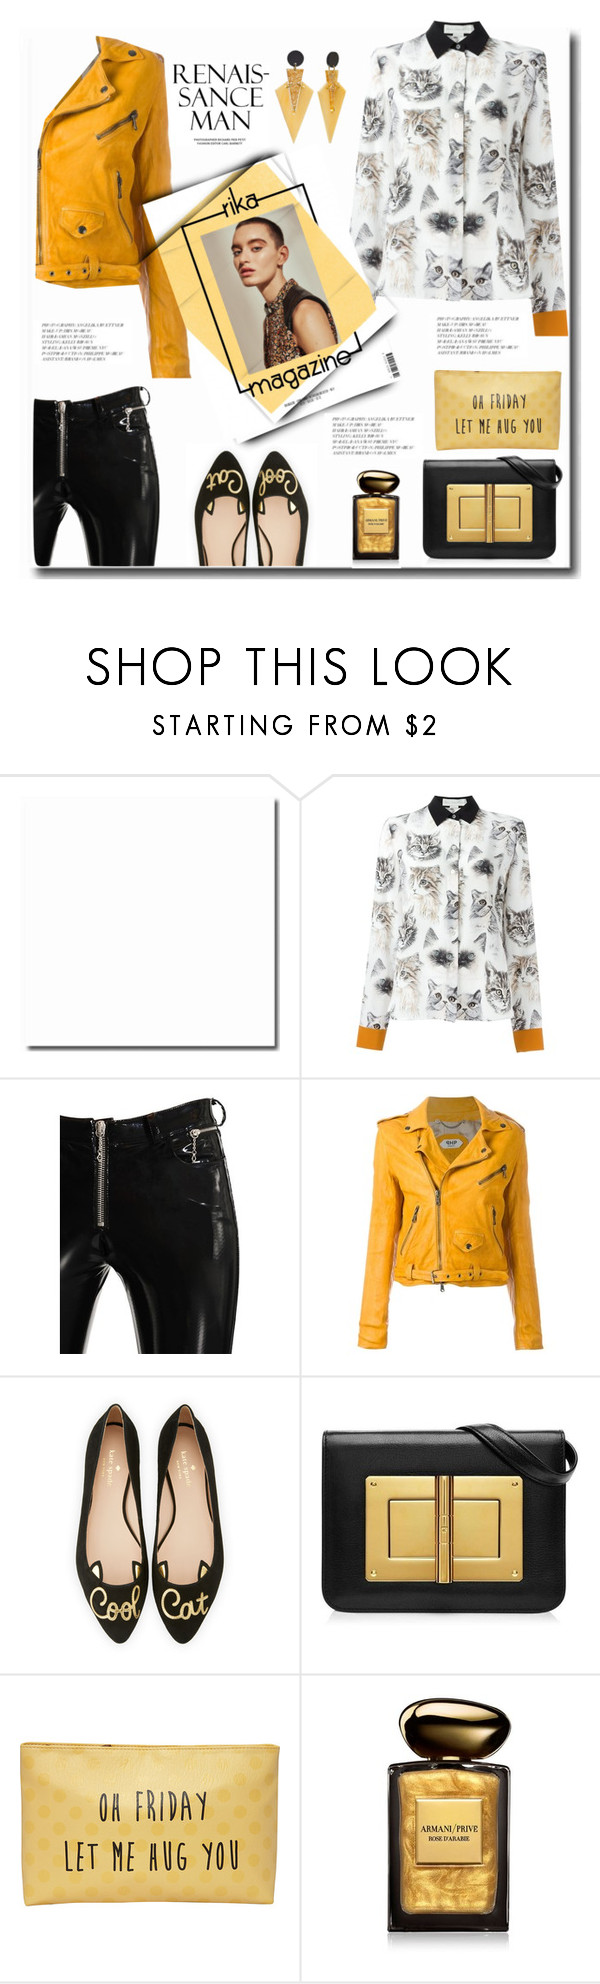 """""""Cool Cat .."""" by gul07 ❤ liked on Polyvore featuring STELLA McCARTNEY, Alyx, Pihakapi, Kate Spade, T-shirt & Jeans, Giorgio Armani, Toolally and Rika"""